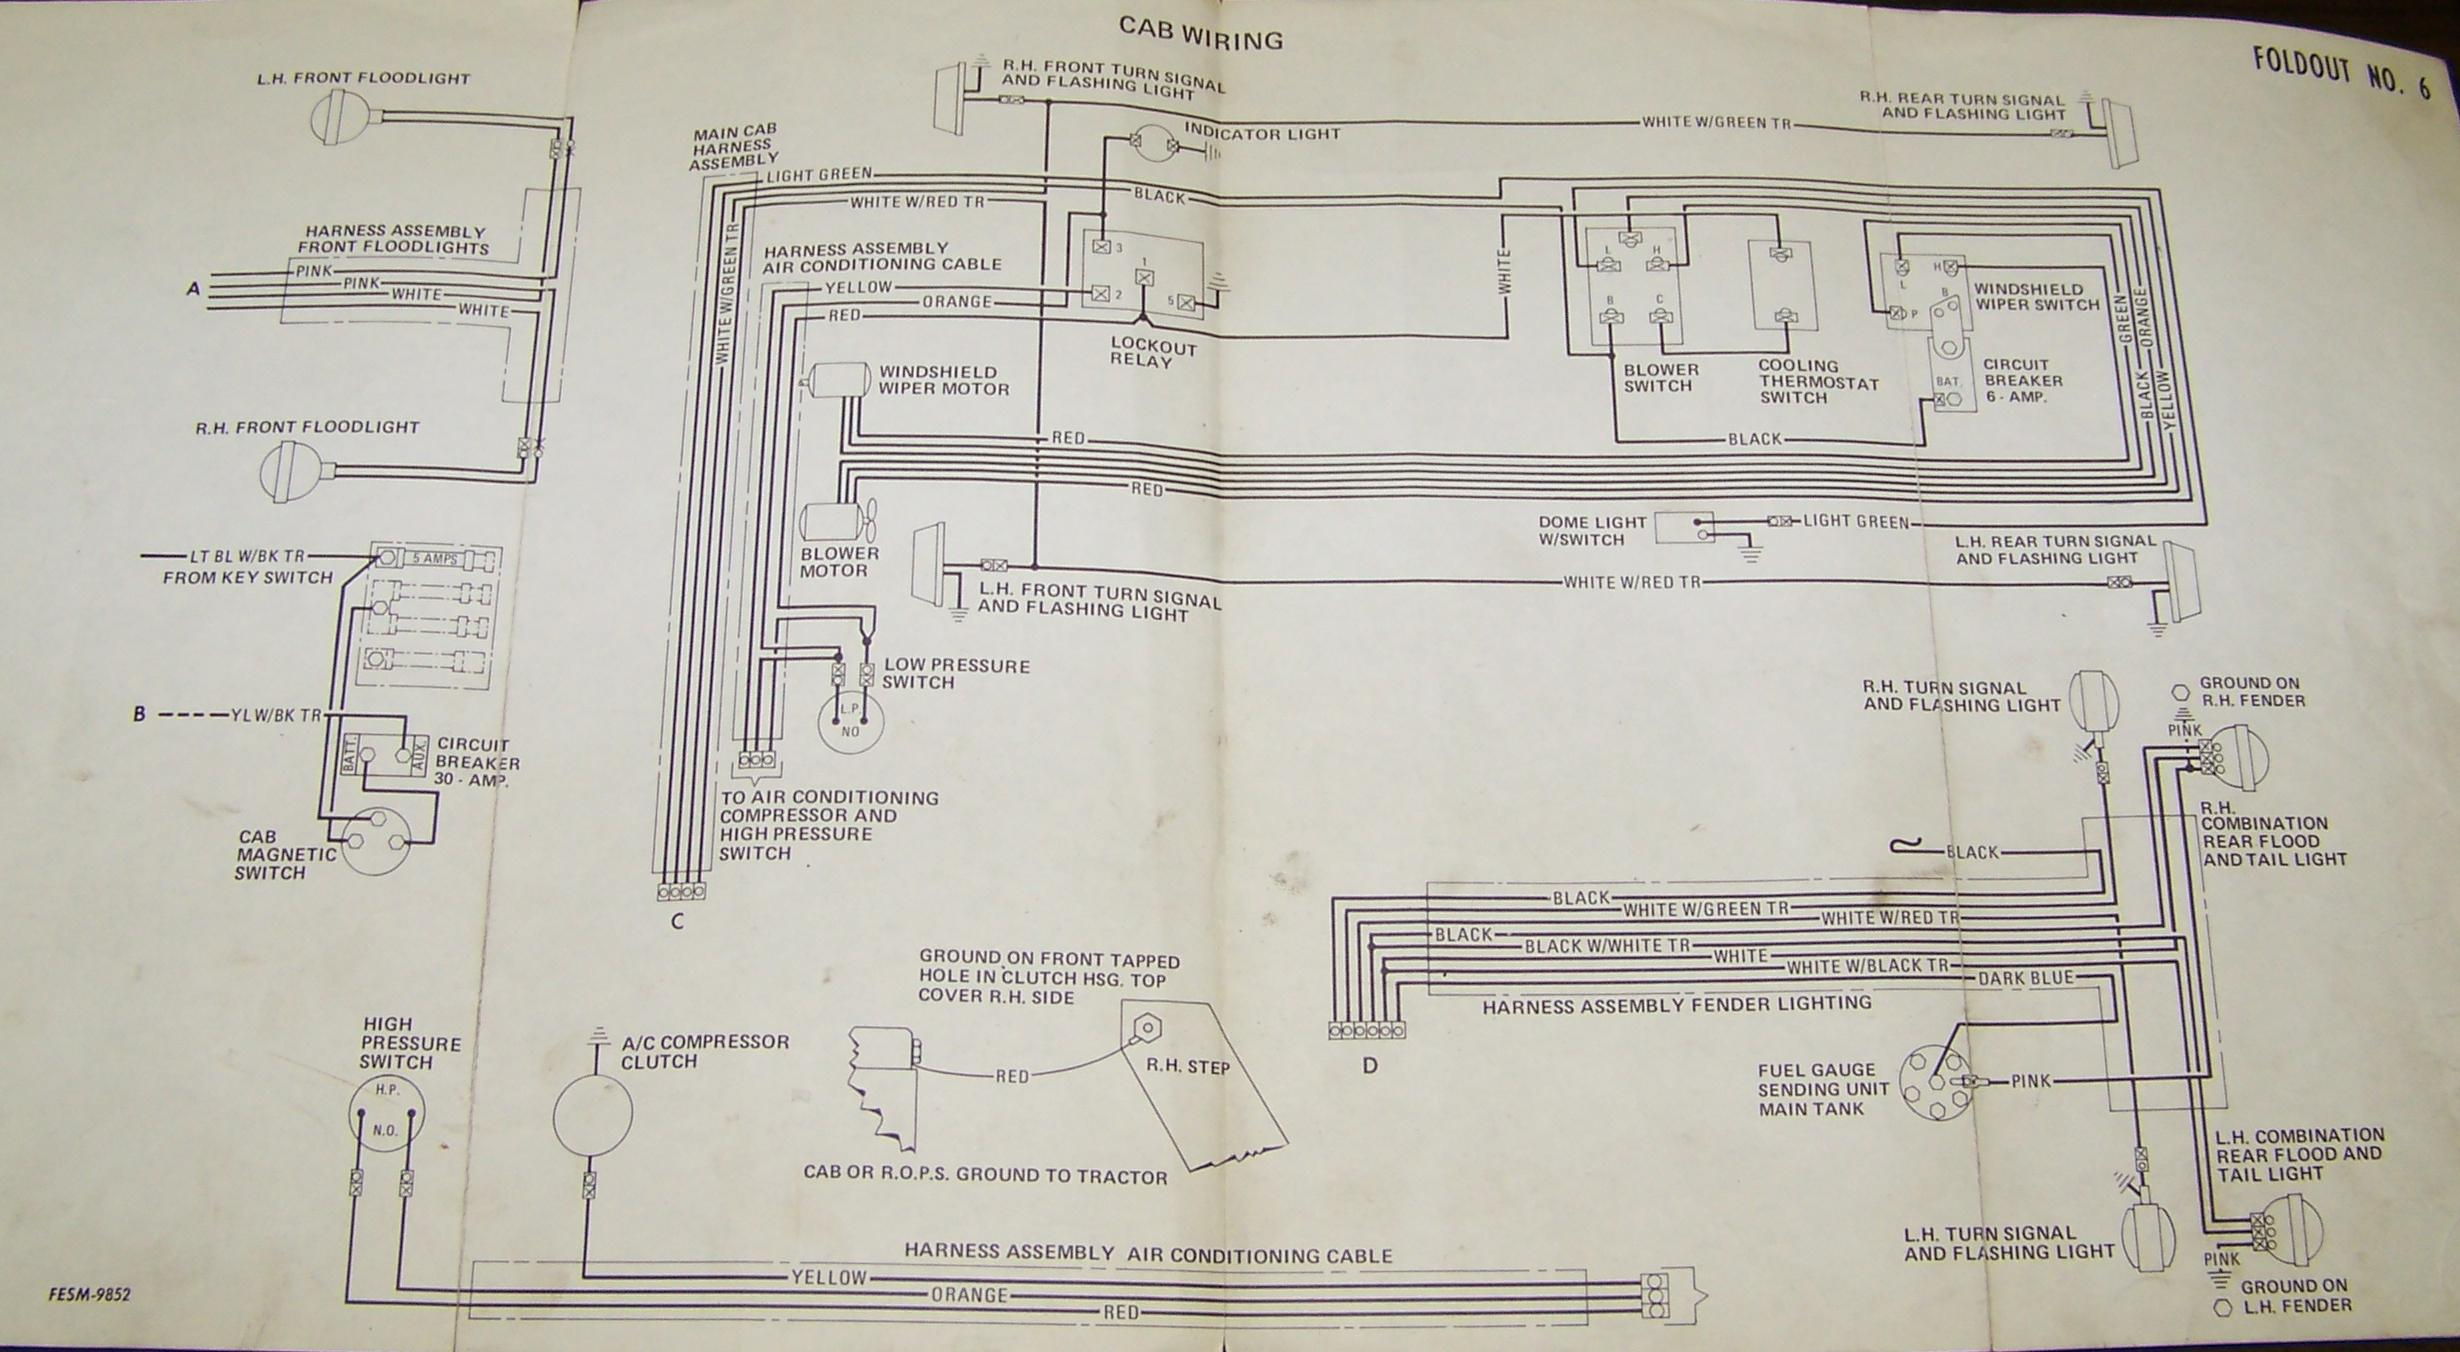 404 Ih Wiring Diagrams Data Circuit Diagram Replacement Kit For 30013 Board Aas 30011k Shop American Carter Gruenewald Co Inc Farmall Tractor Electrical Rh Cngco Com 1942 H